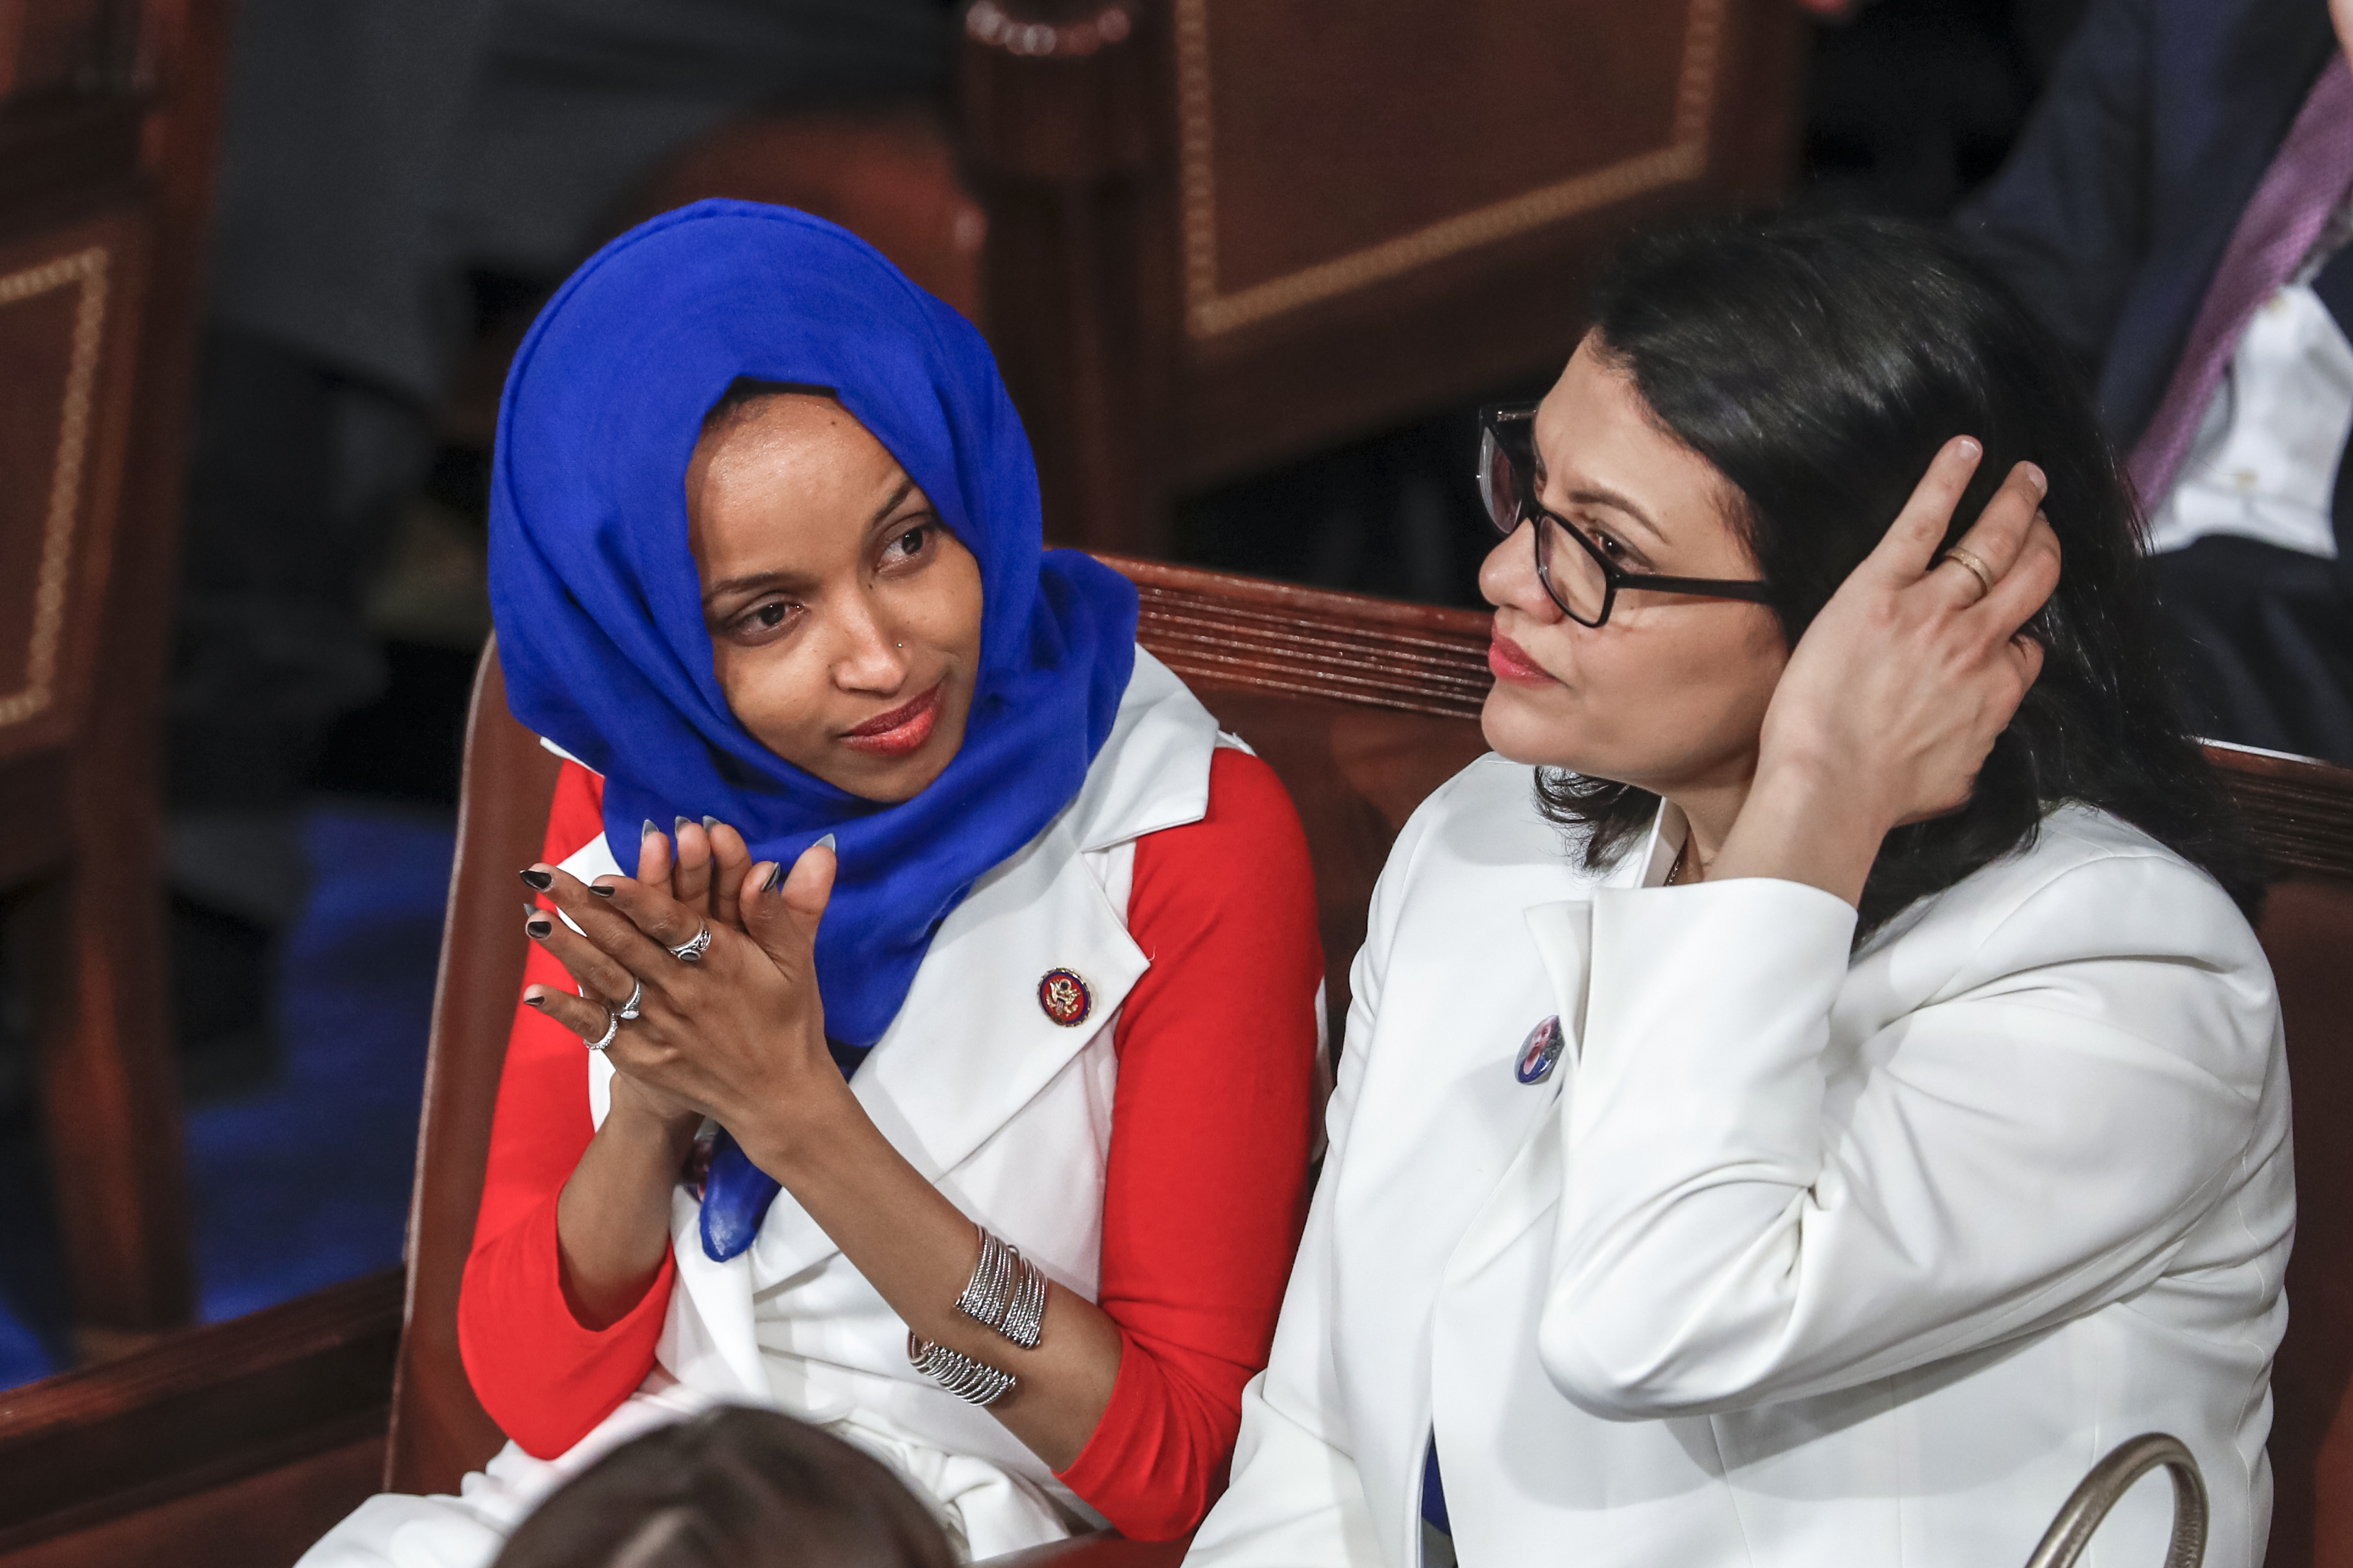 Netanyahu considers blocking Omar, Tlaib from entering Israel ahead of a planned weekend visit - The Washington Post